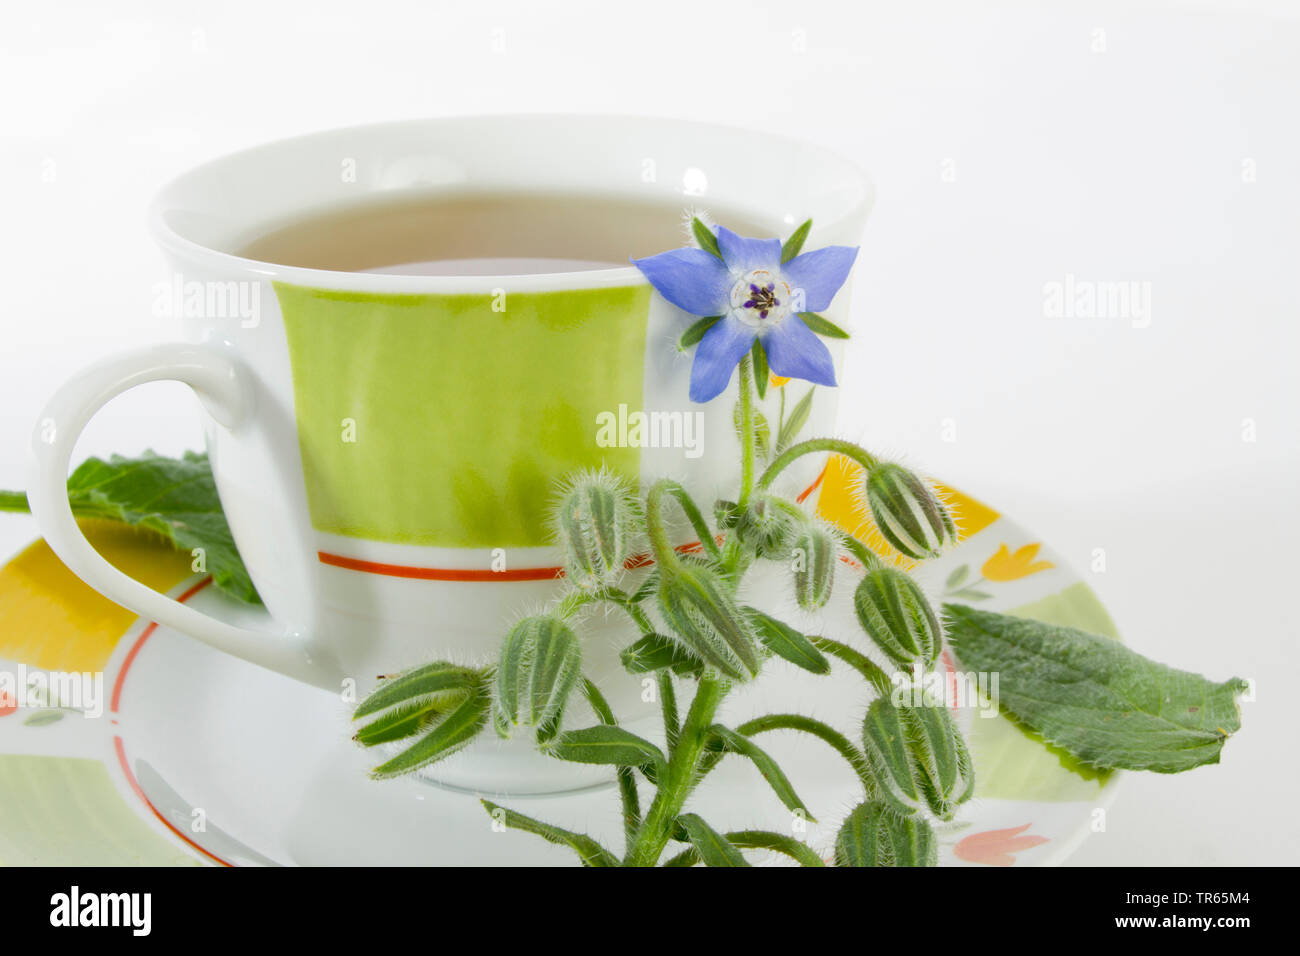 Borretsch, Boretsch, Gurkenkraut (Borago officinalis), Borretschtee mit Borretschpflanze, Deutschland | common borage (Borago officinalis), borage tea - Stock Image